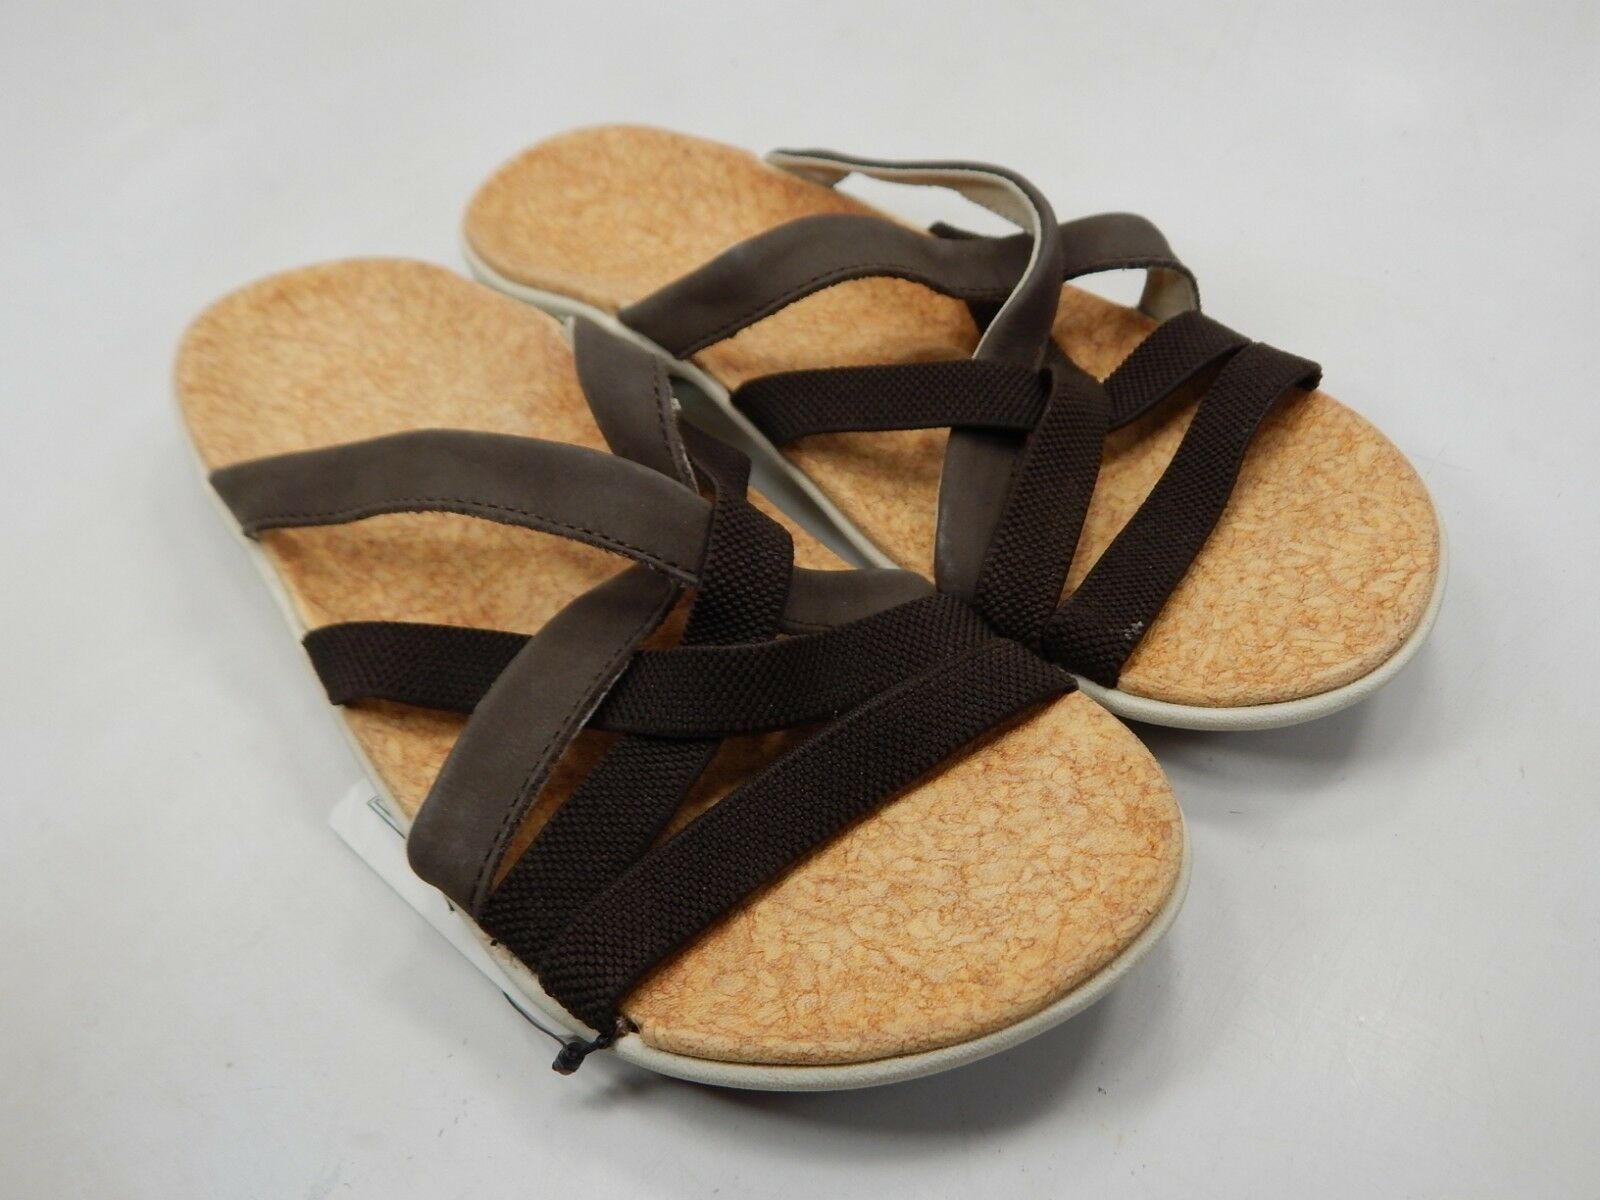 Spenco Jari S1 Sz 7 M (B) EU 37.5 Women's Orthotic Strappy Slide Sandals Brown